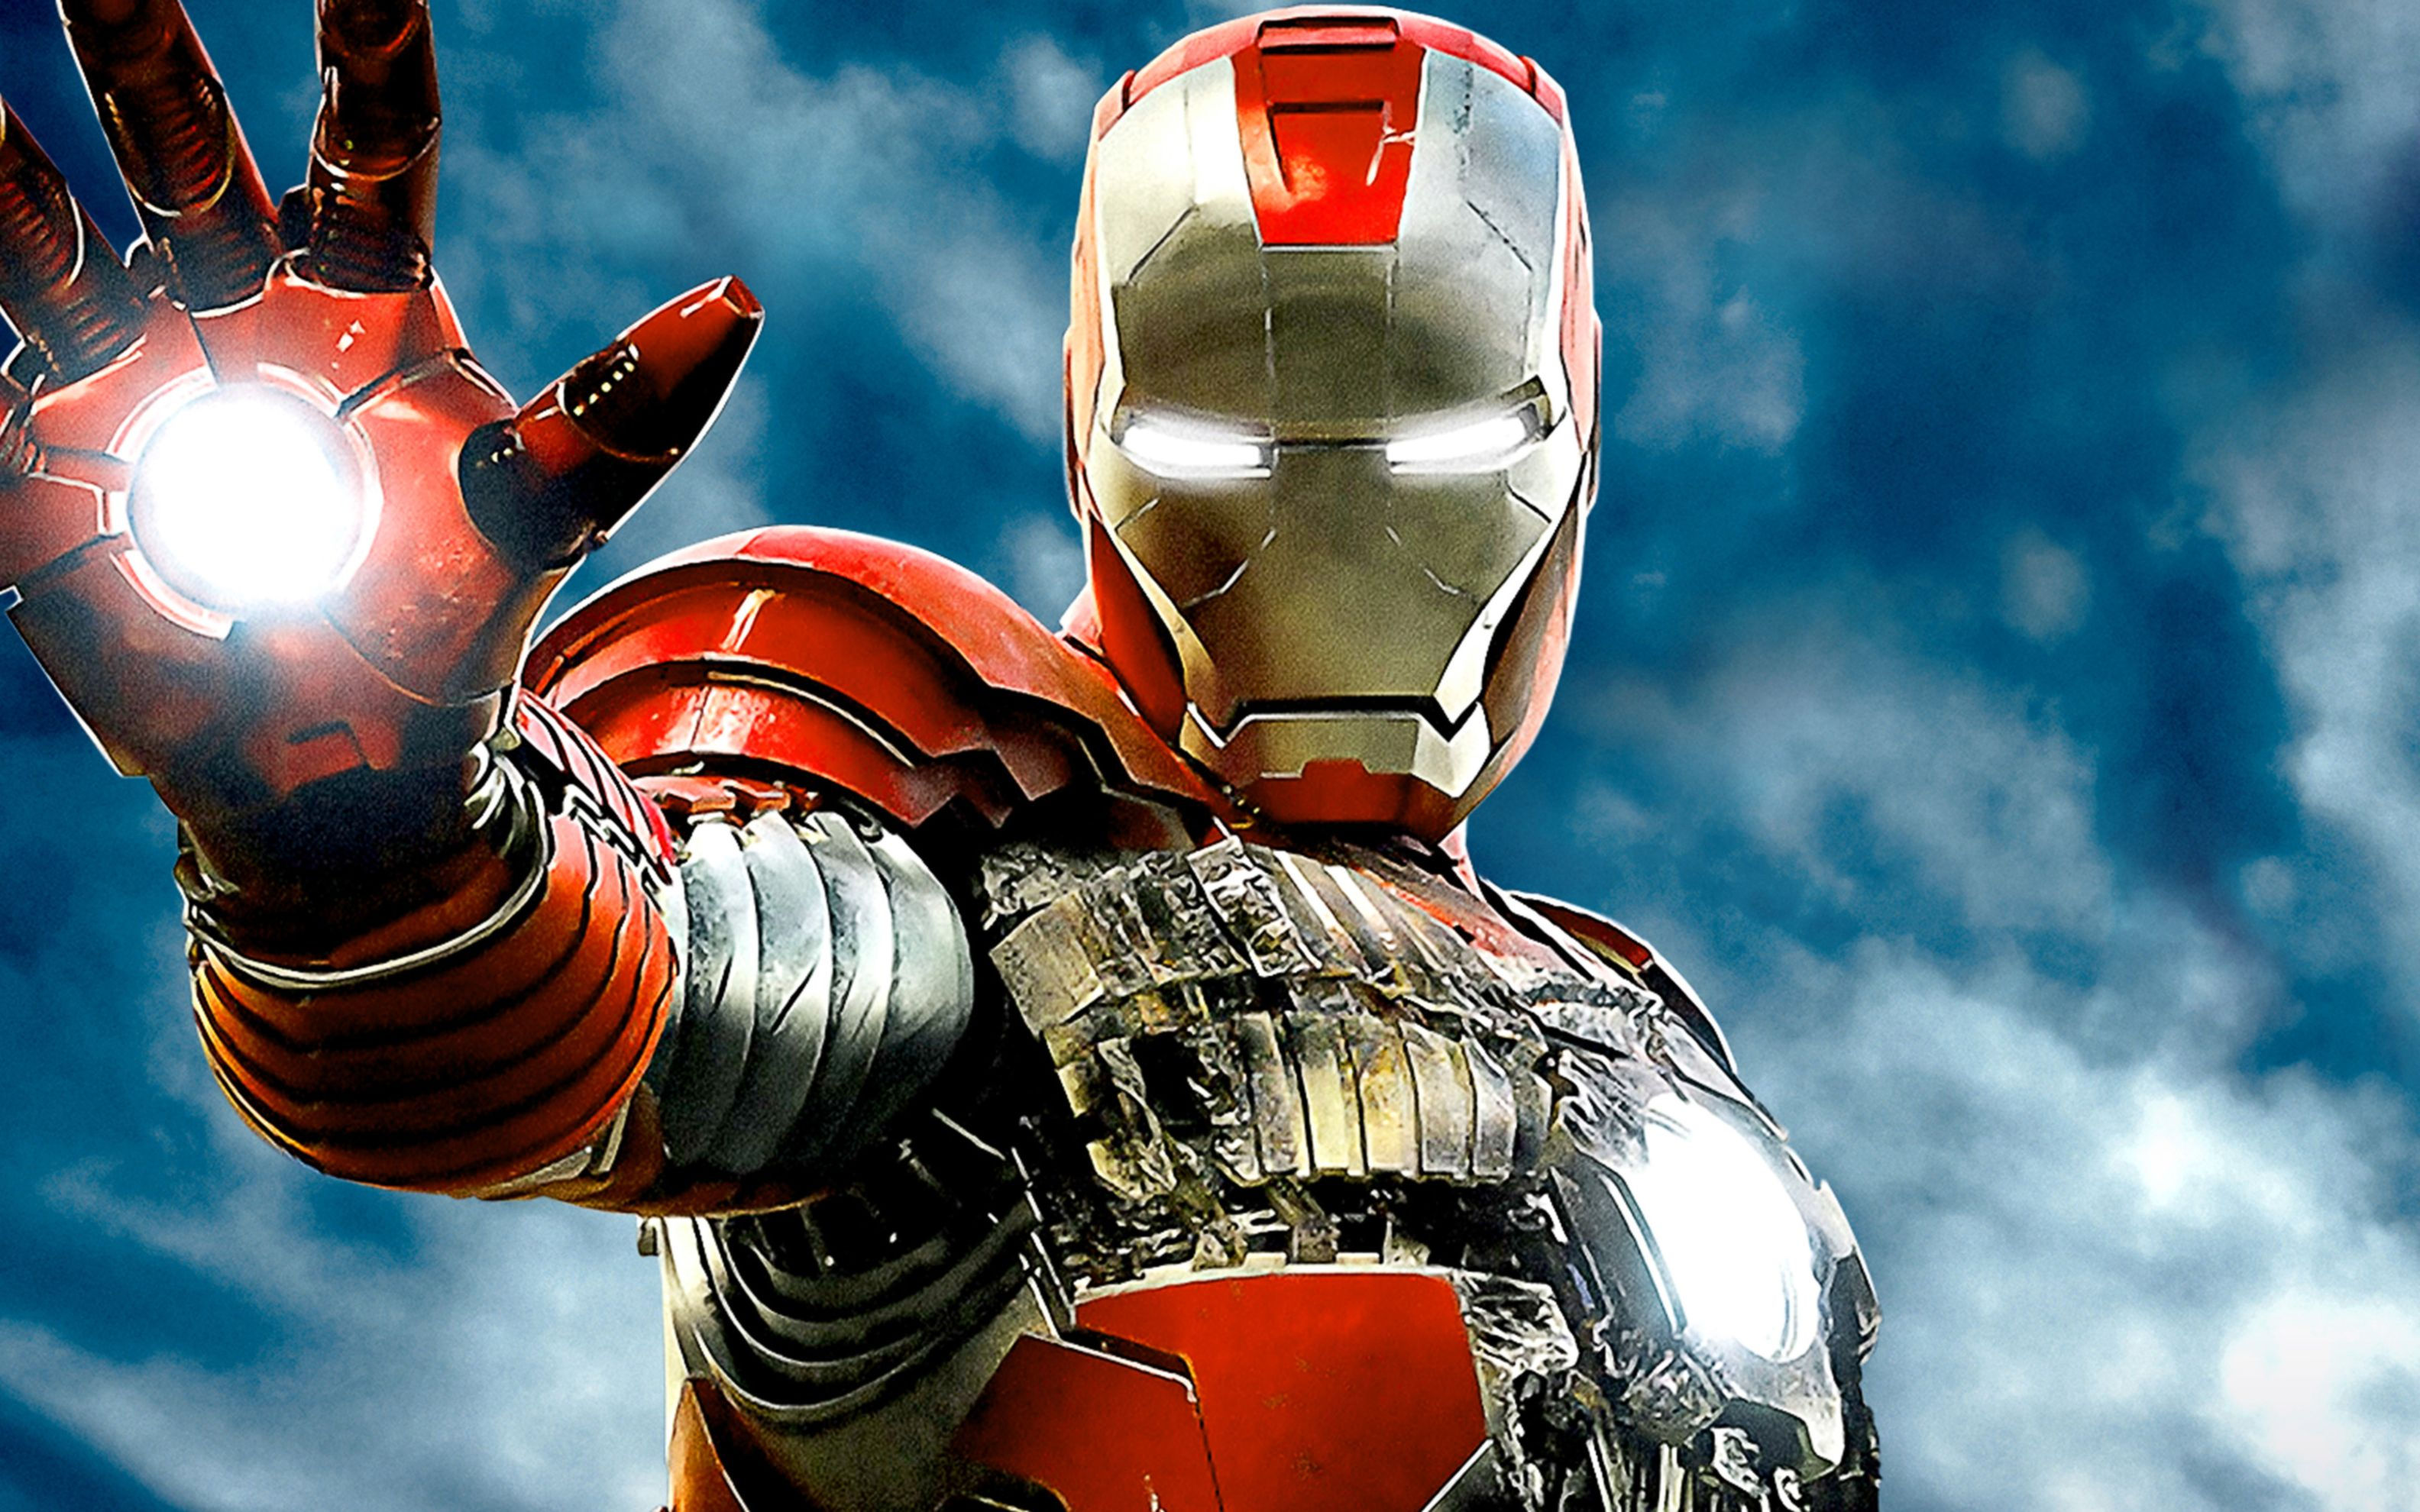 Download free HD Iron Man 2 Imax Poster Wide Wallpaper, image